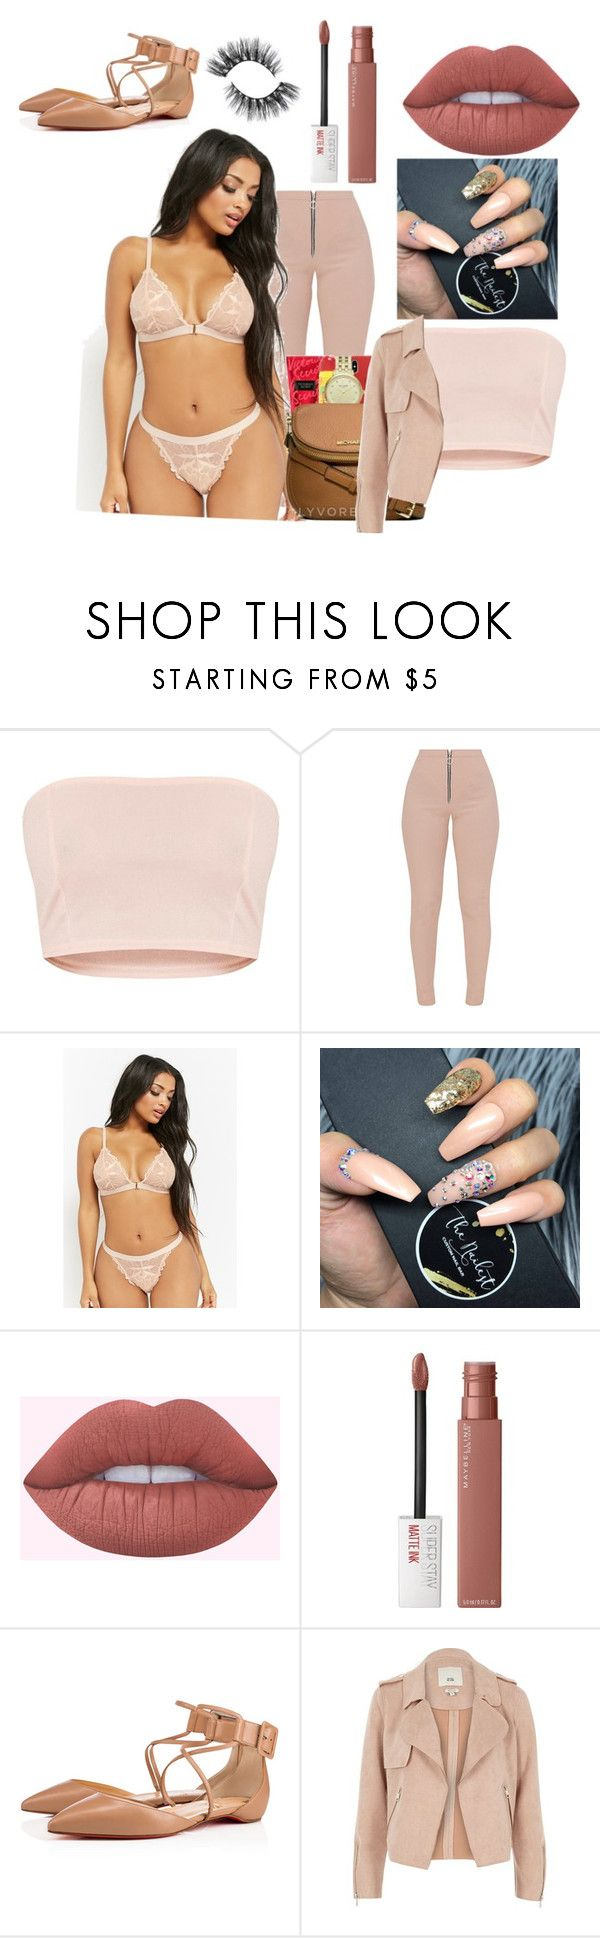 """""""victora secret"""" by diamondinthesky13 ❤ liked on Polyvore featuring Forever 21, Maybelline, Christian Louboutin and River Island"""